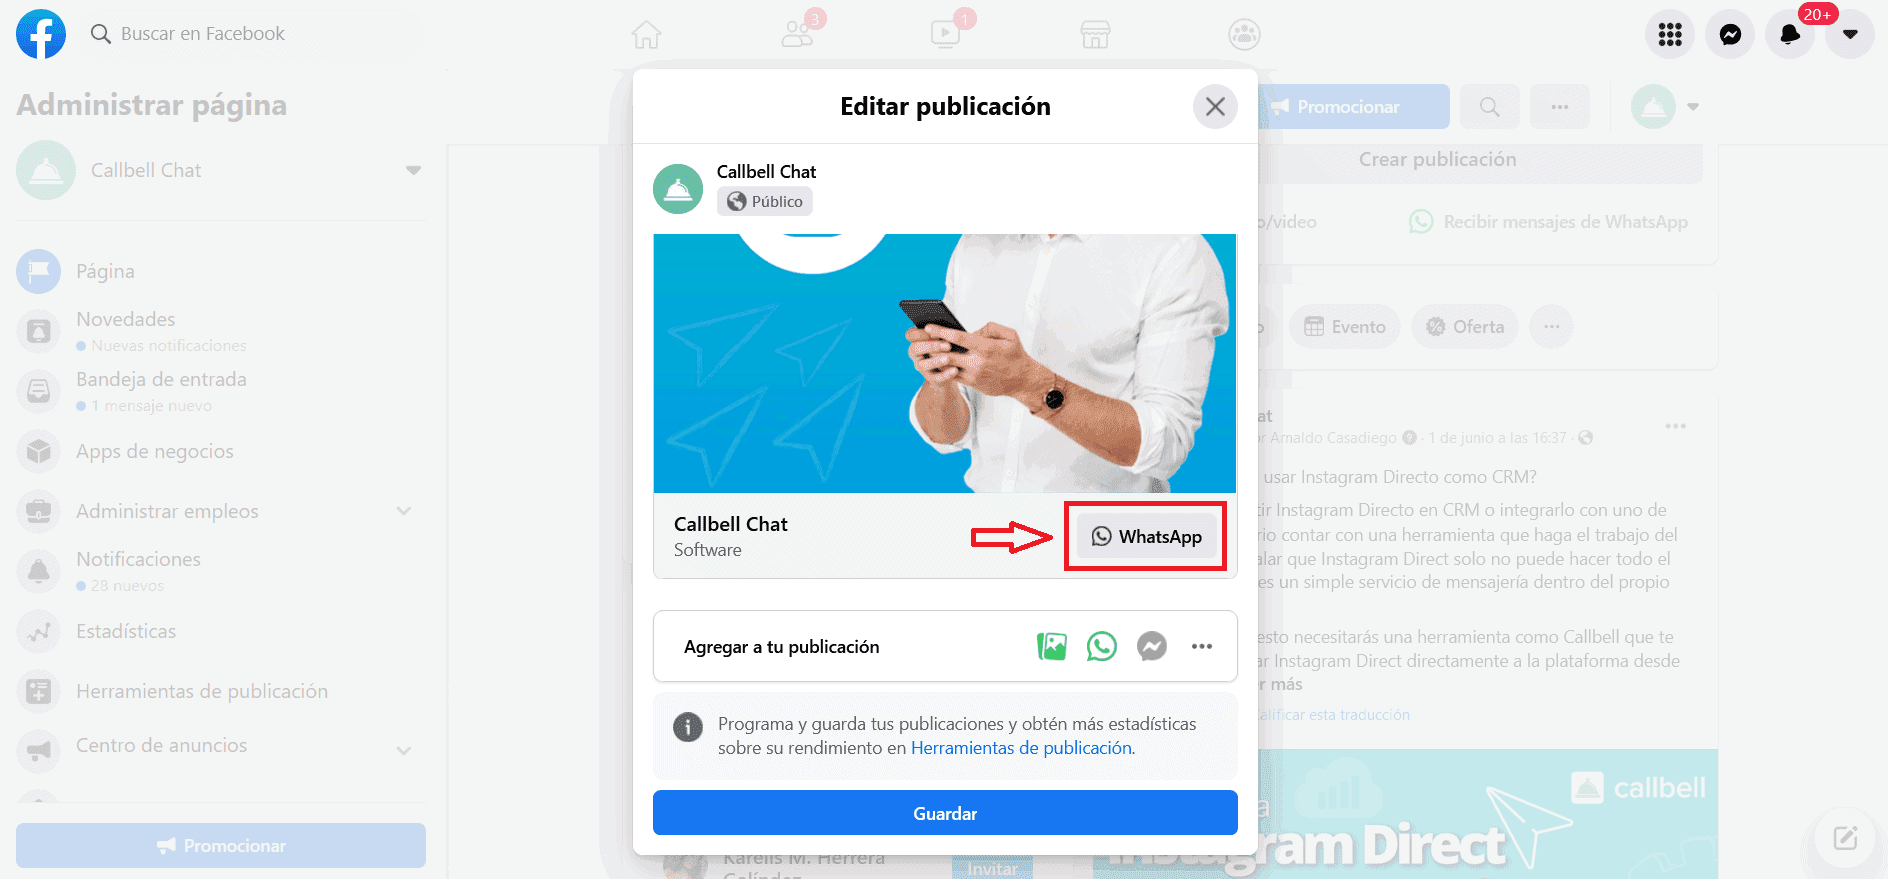 How to add the WhatsApp button to a Facebook's post?